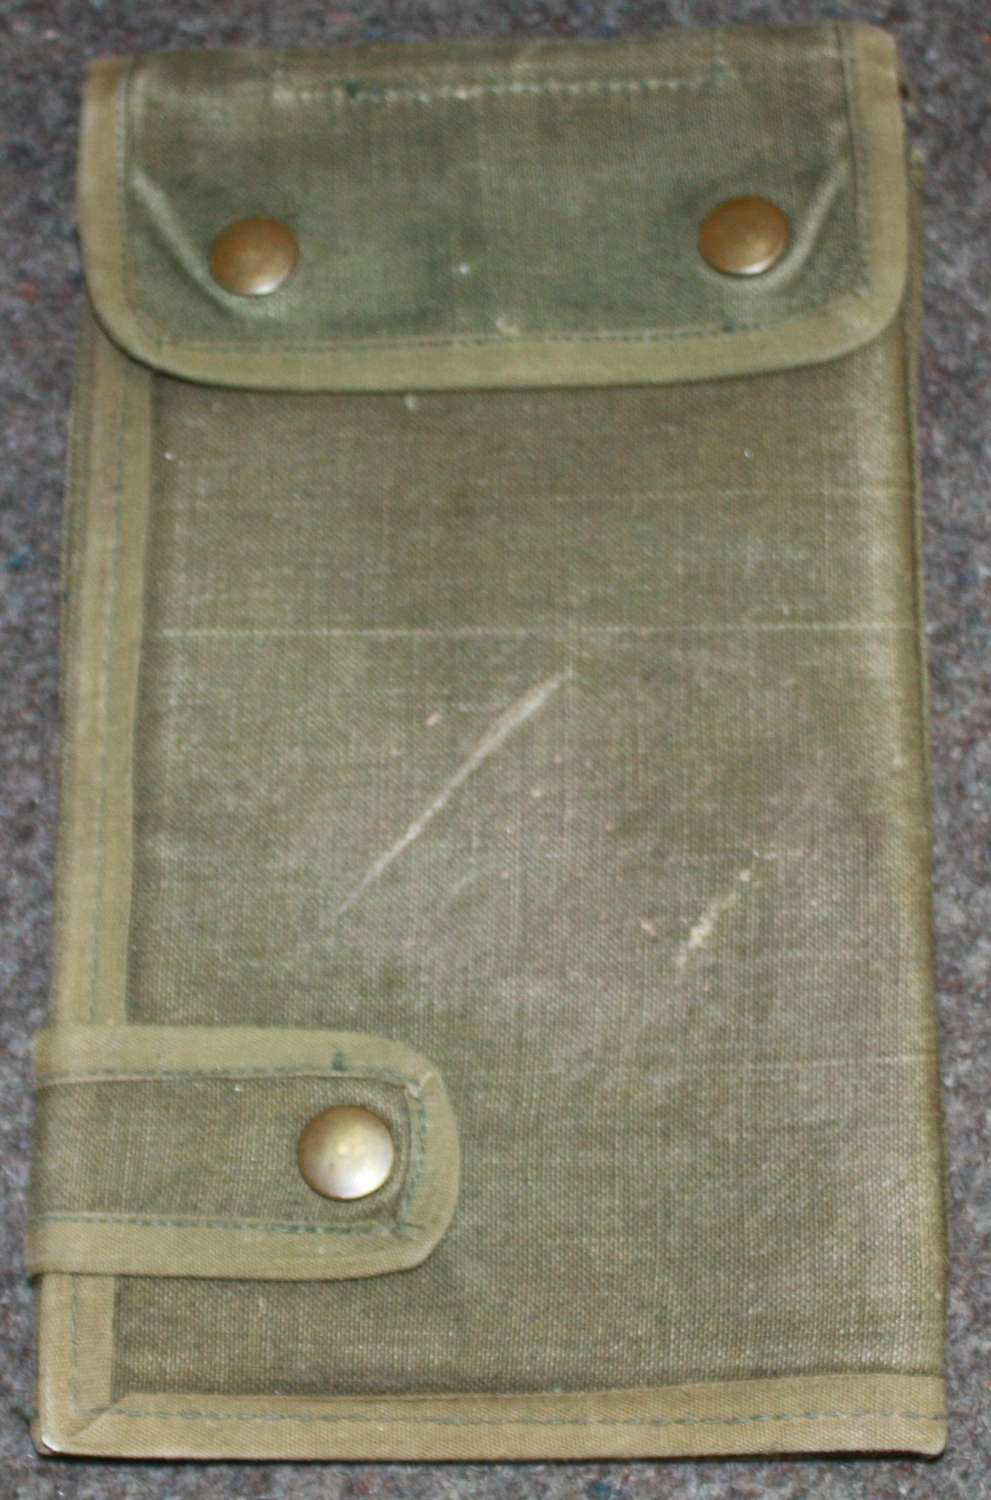 A 1945 DATED 44 PATTERN MAP CASE